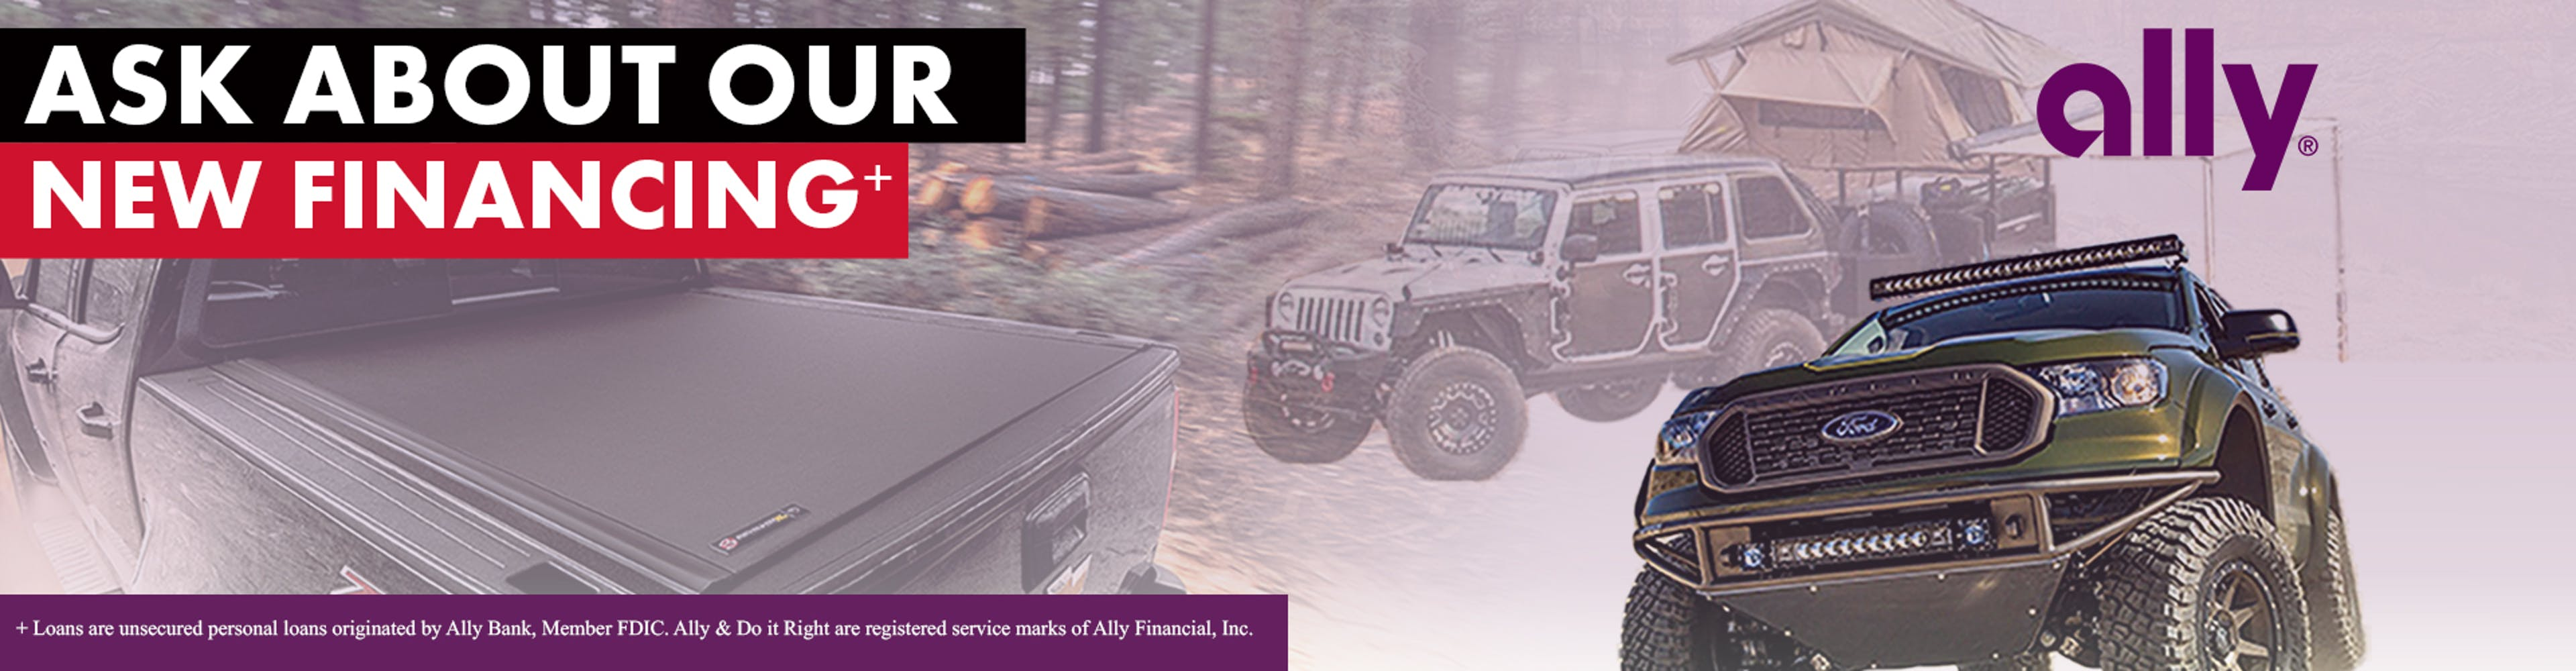 New Financing Options from Ally